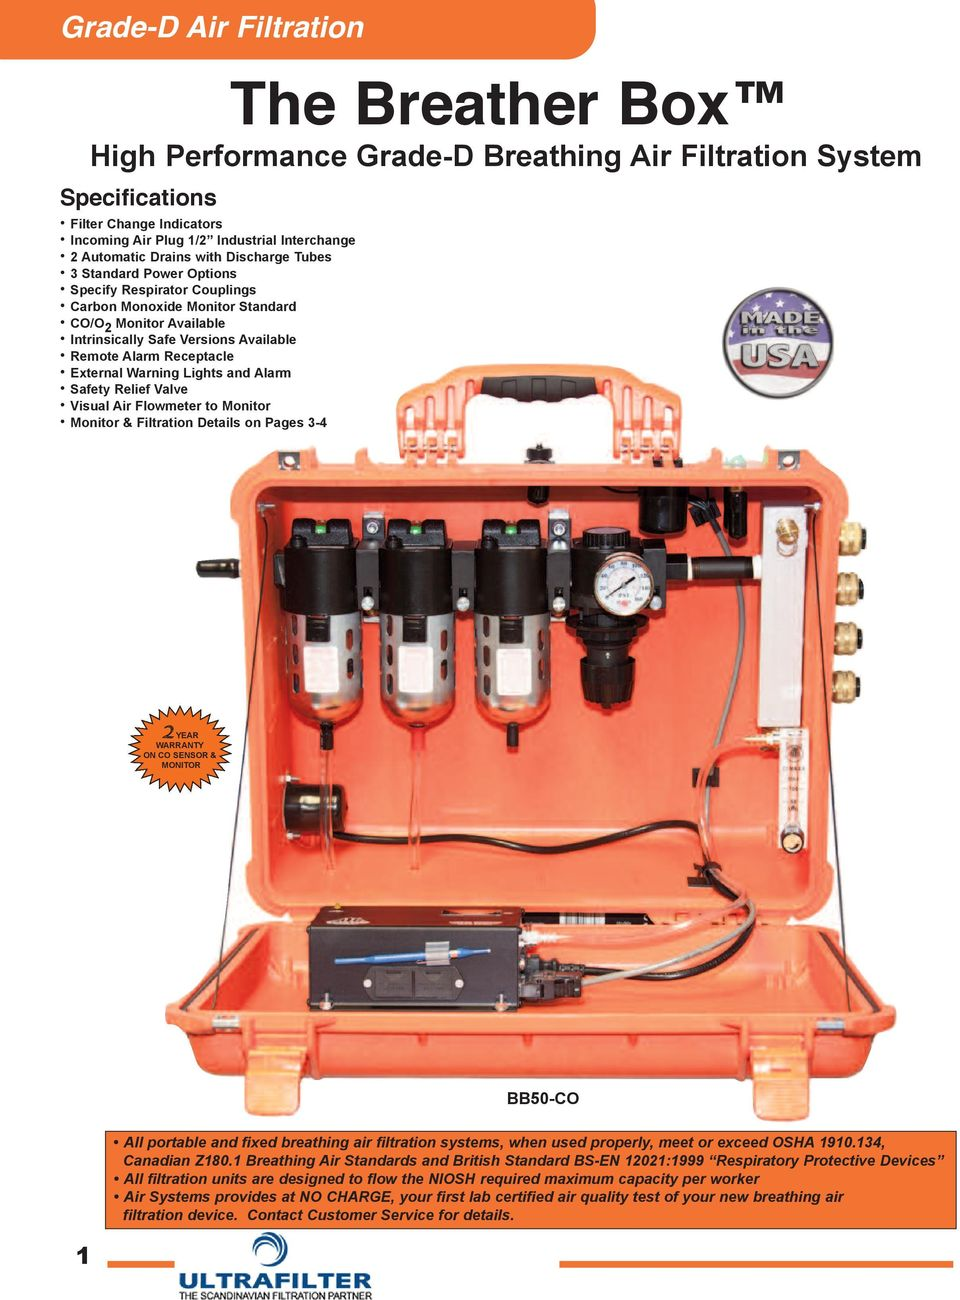 and Alarm safety Relief Valve Visual Air Flowmeter to monitor monitor & Filtration Details on Pages 3-4 BB50-cO 1 All portable and fixed breathing air filtration systems, when used properly, meet or